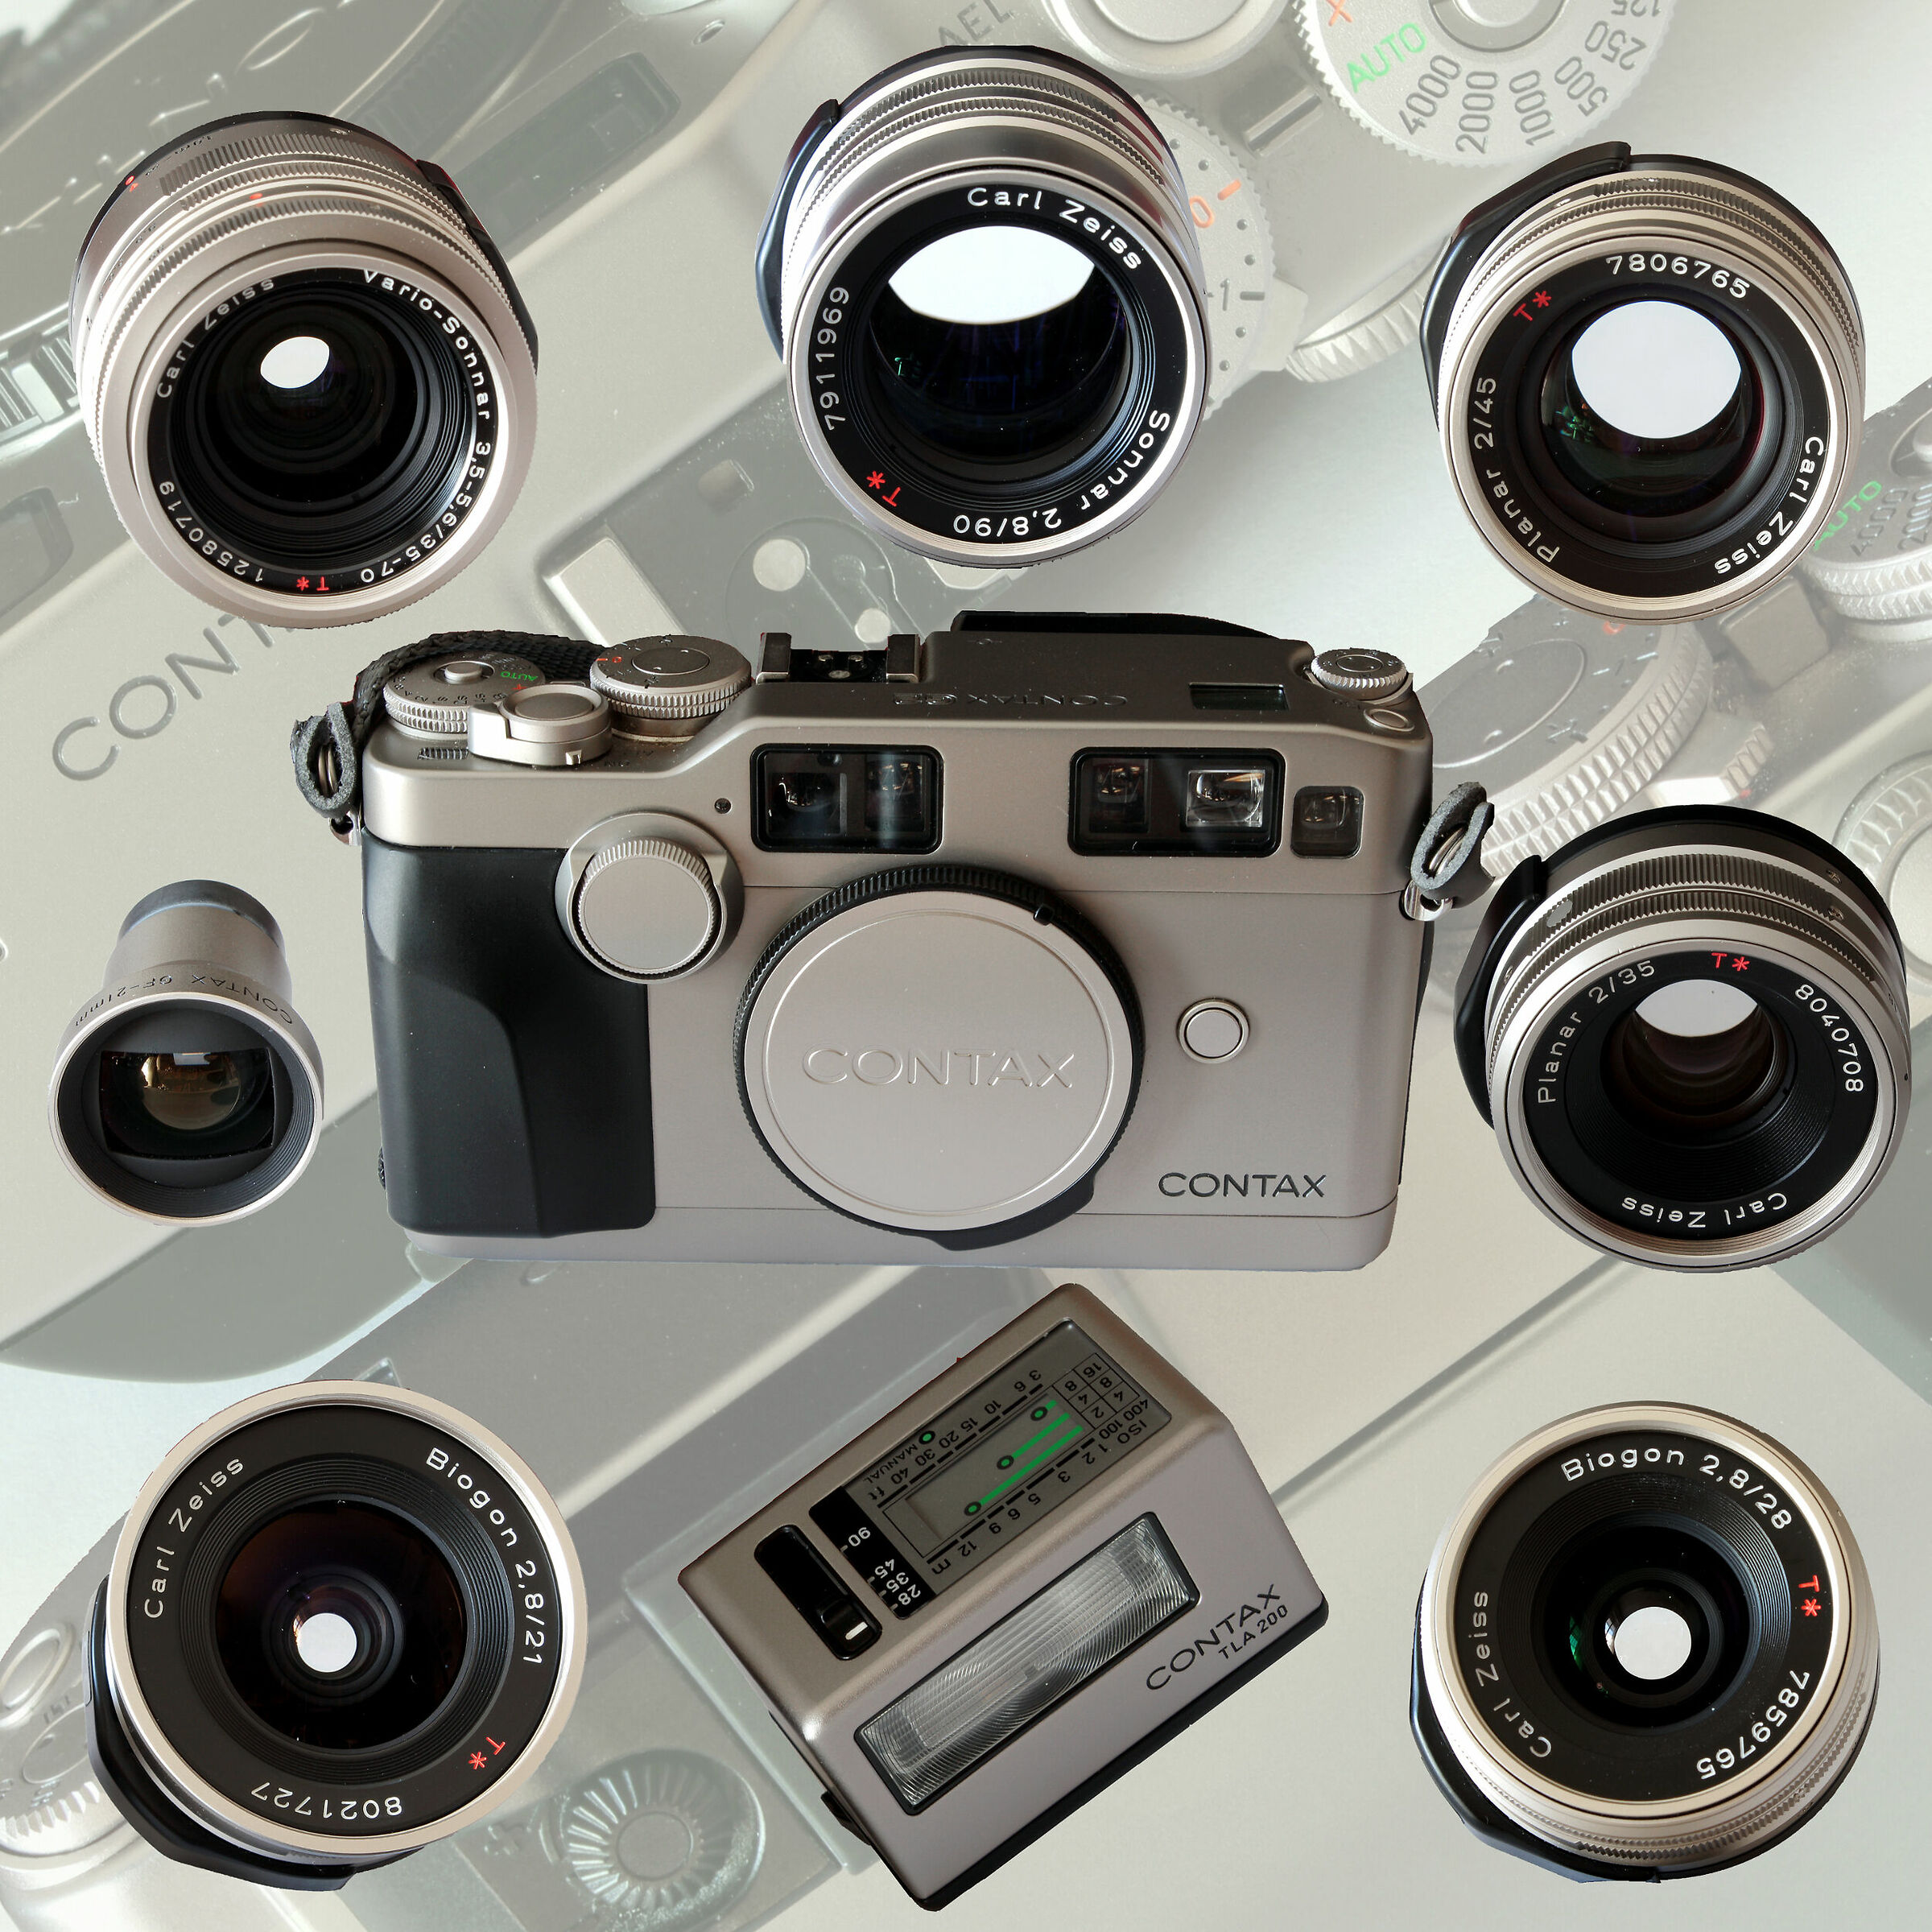 Contax G system...